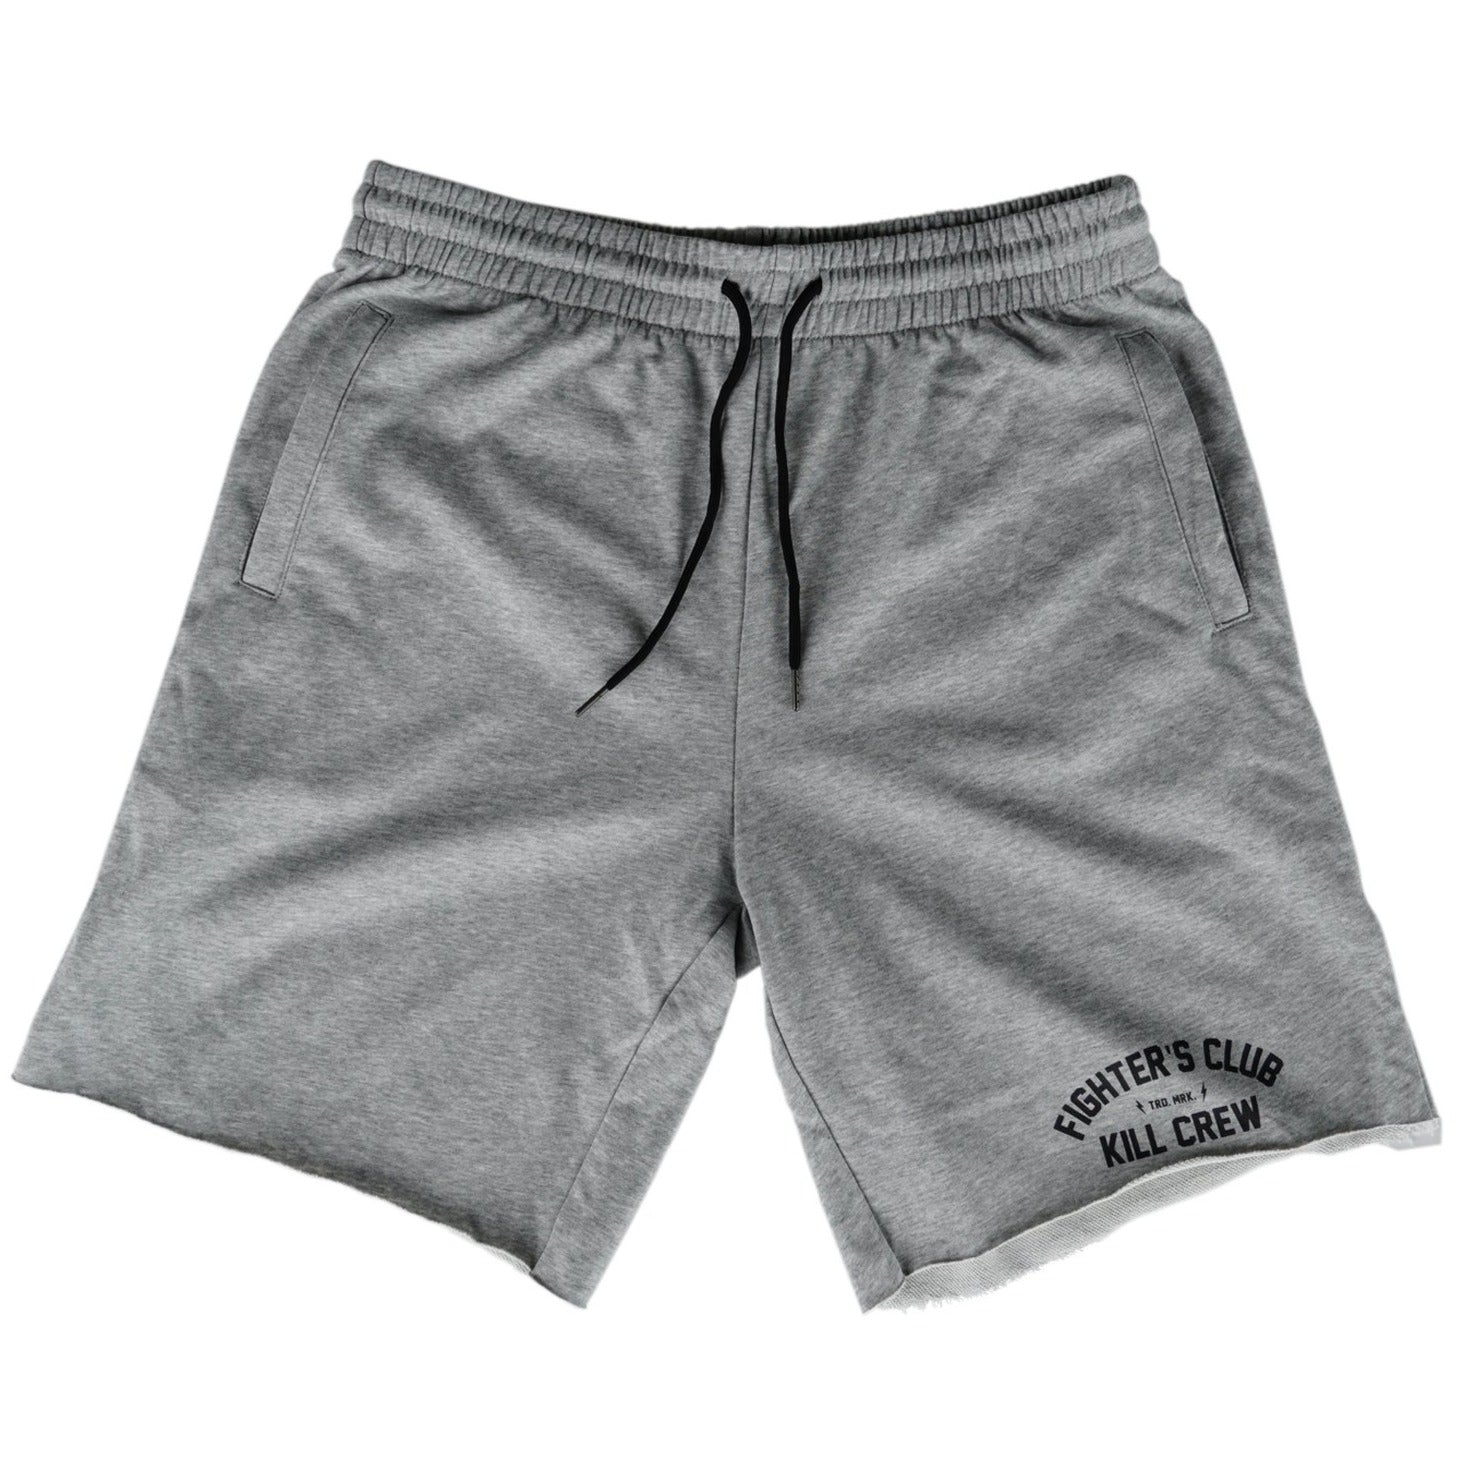 FIGHTER'S CLUB SHORTS - GREY